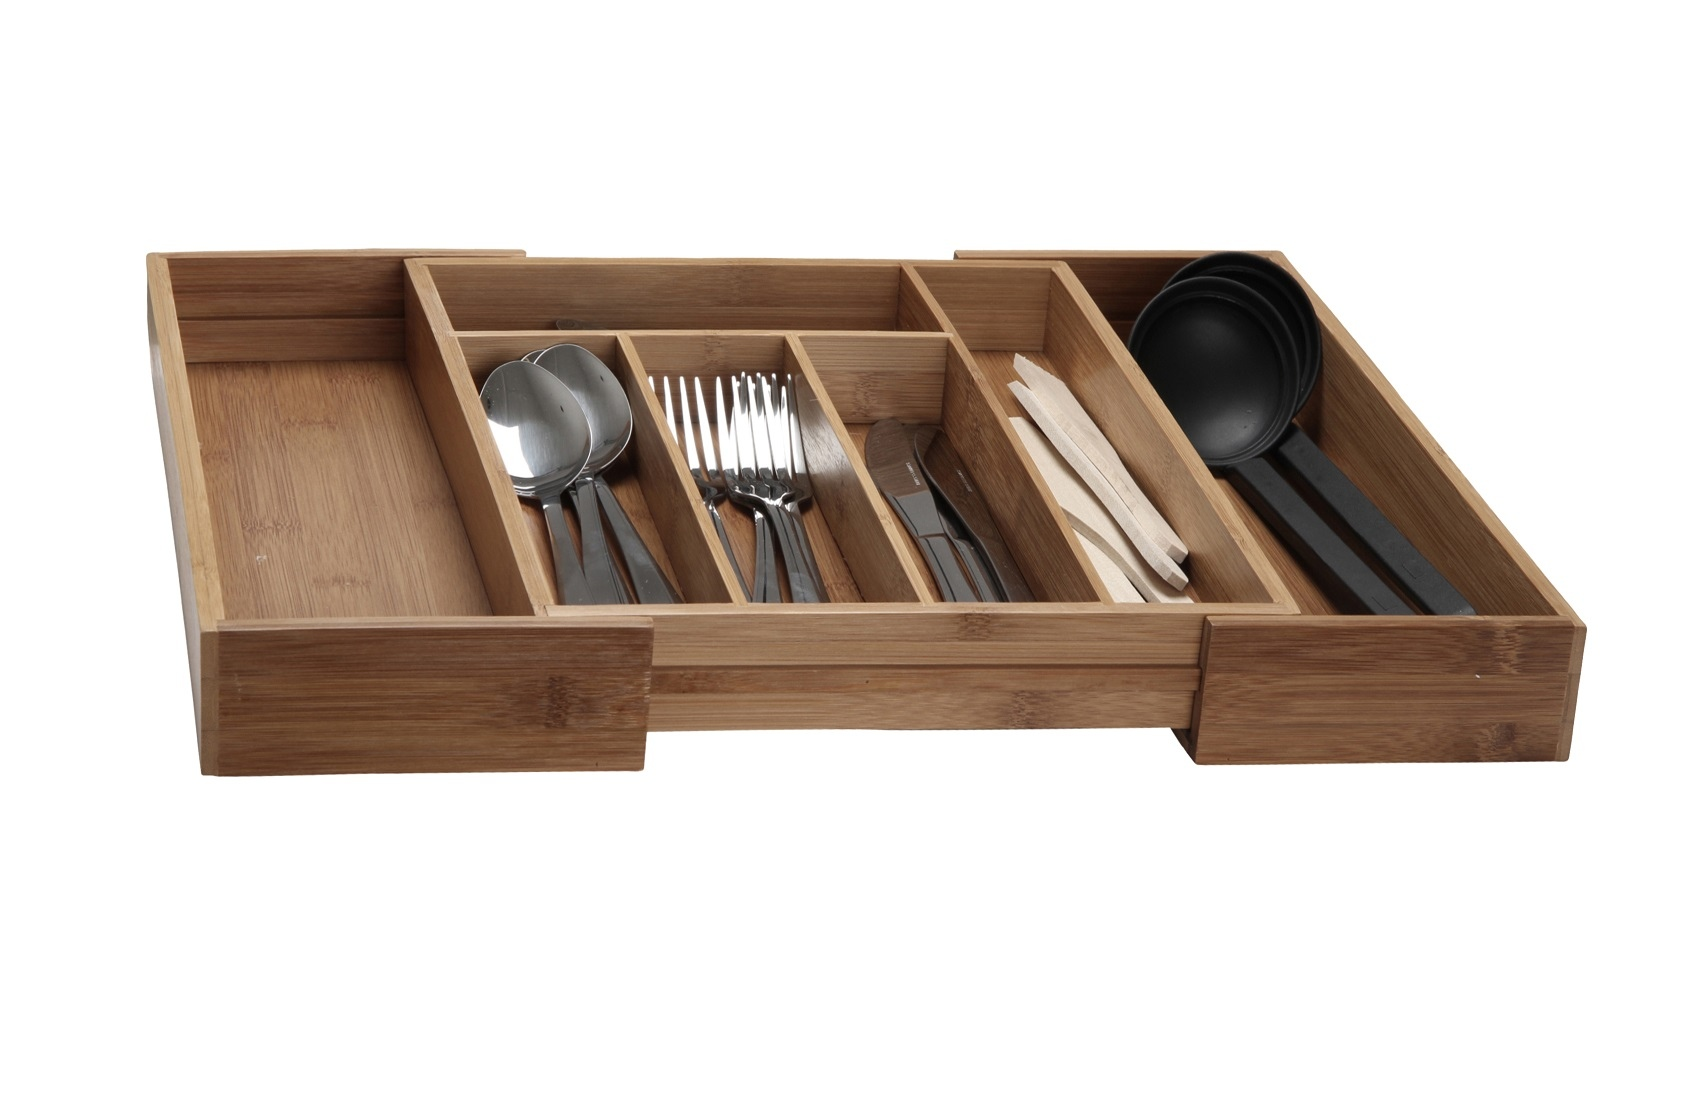 Extendable bamboo cutlery box wood kitchen drawer for Vertical silverware organizer